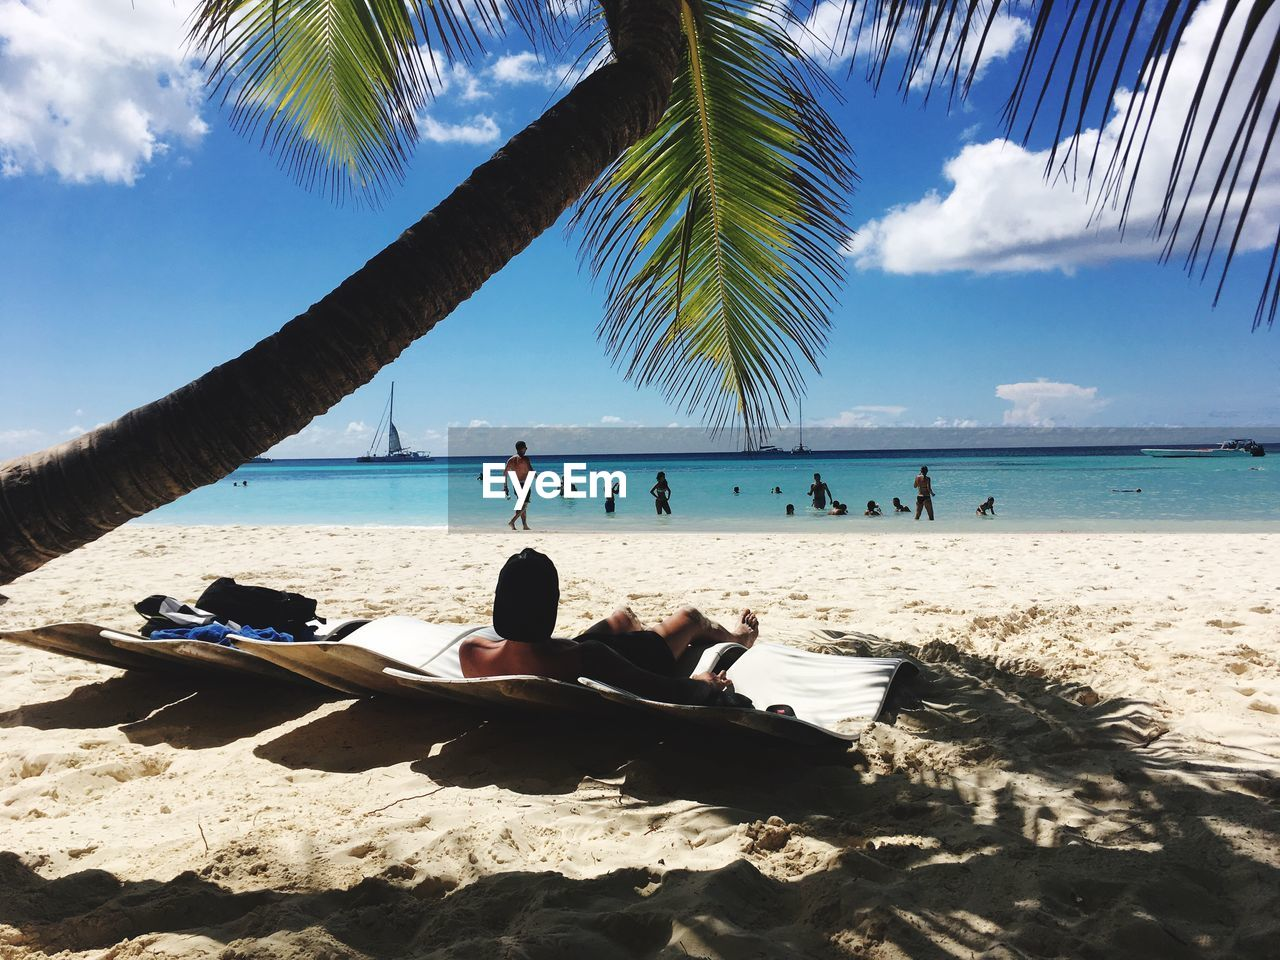 beach, land, sea, sky, water, tropical climate, palm tree, tree, sand, nature, beauty in nature, real people, leisure activity, sunlight, day, scenics - nature, horizon, holiday, lifestyles, horizon over water, outdoors, palm leaf